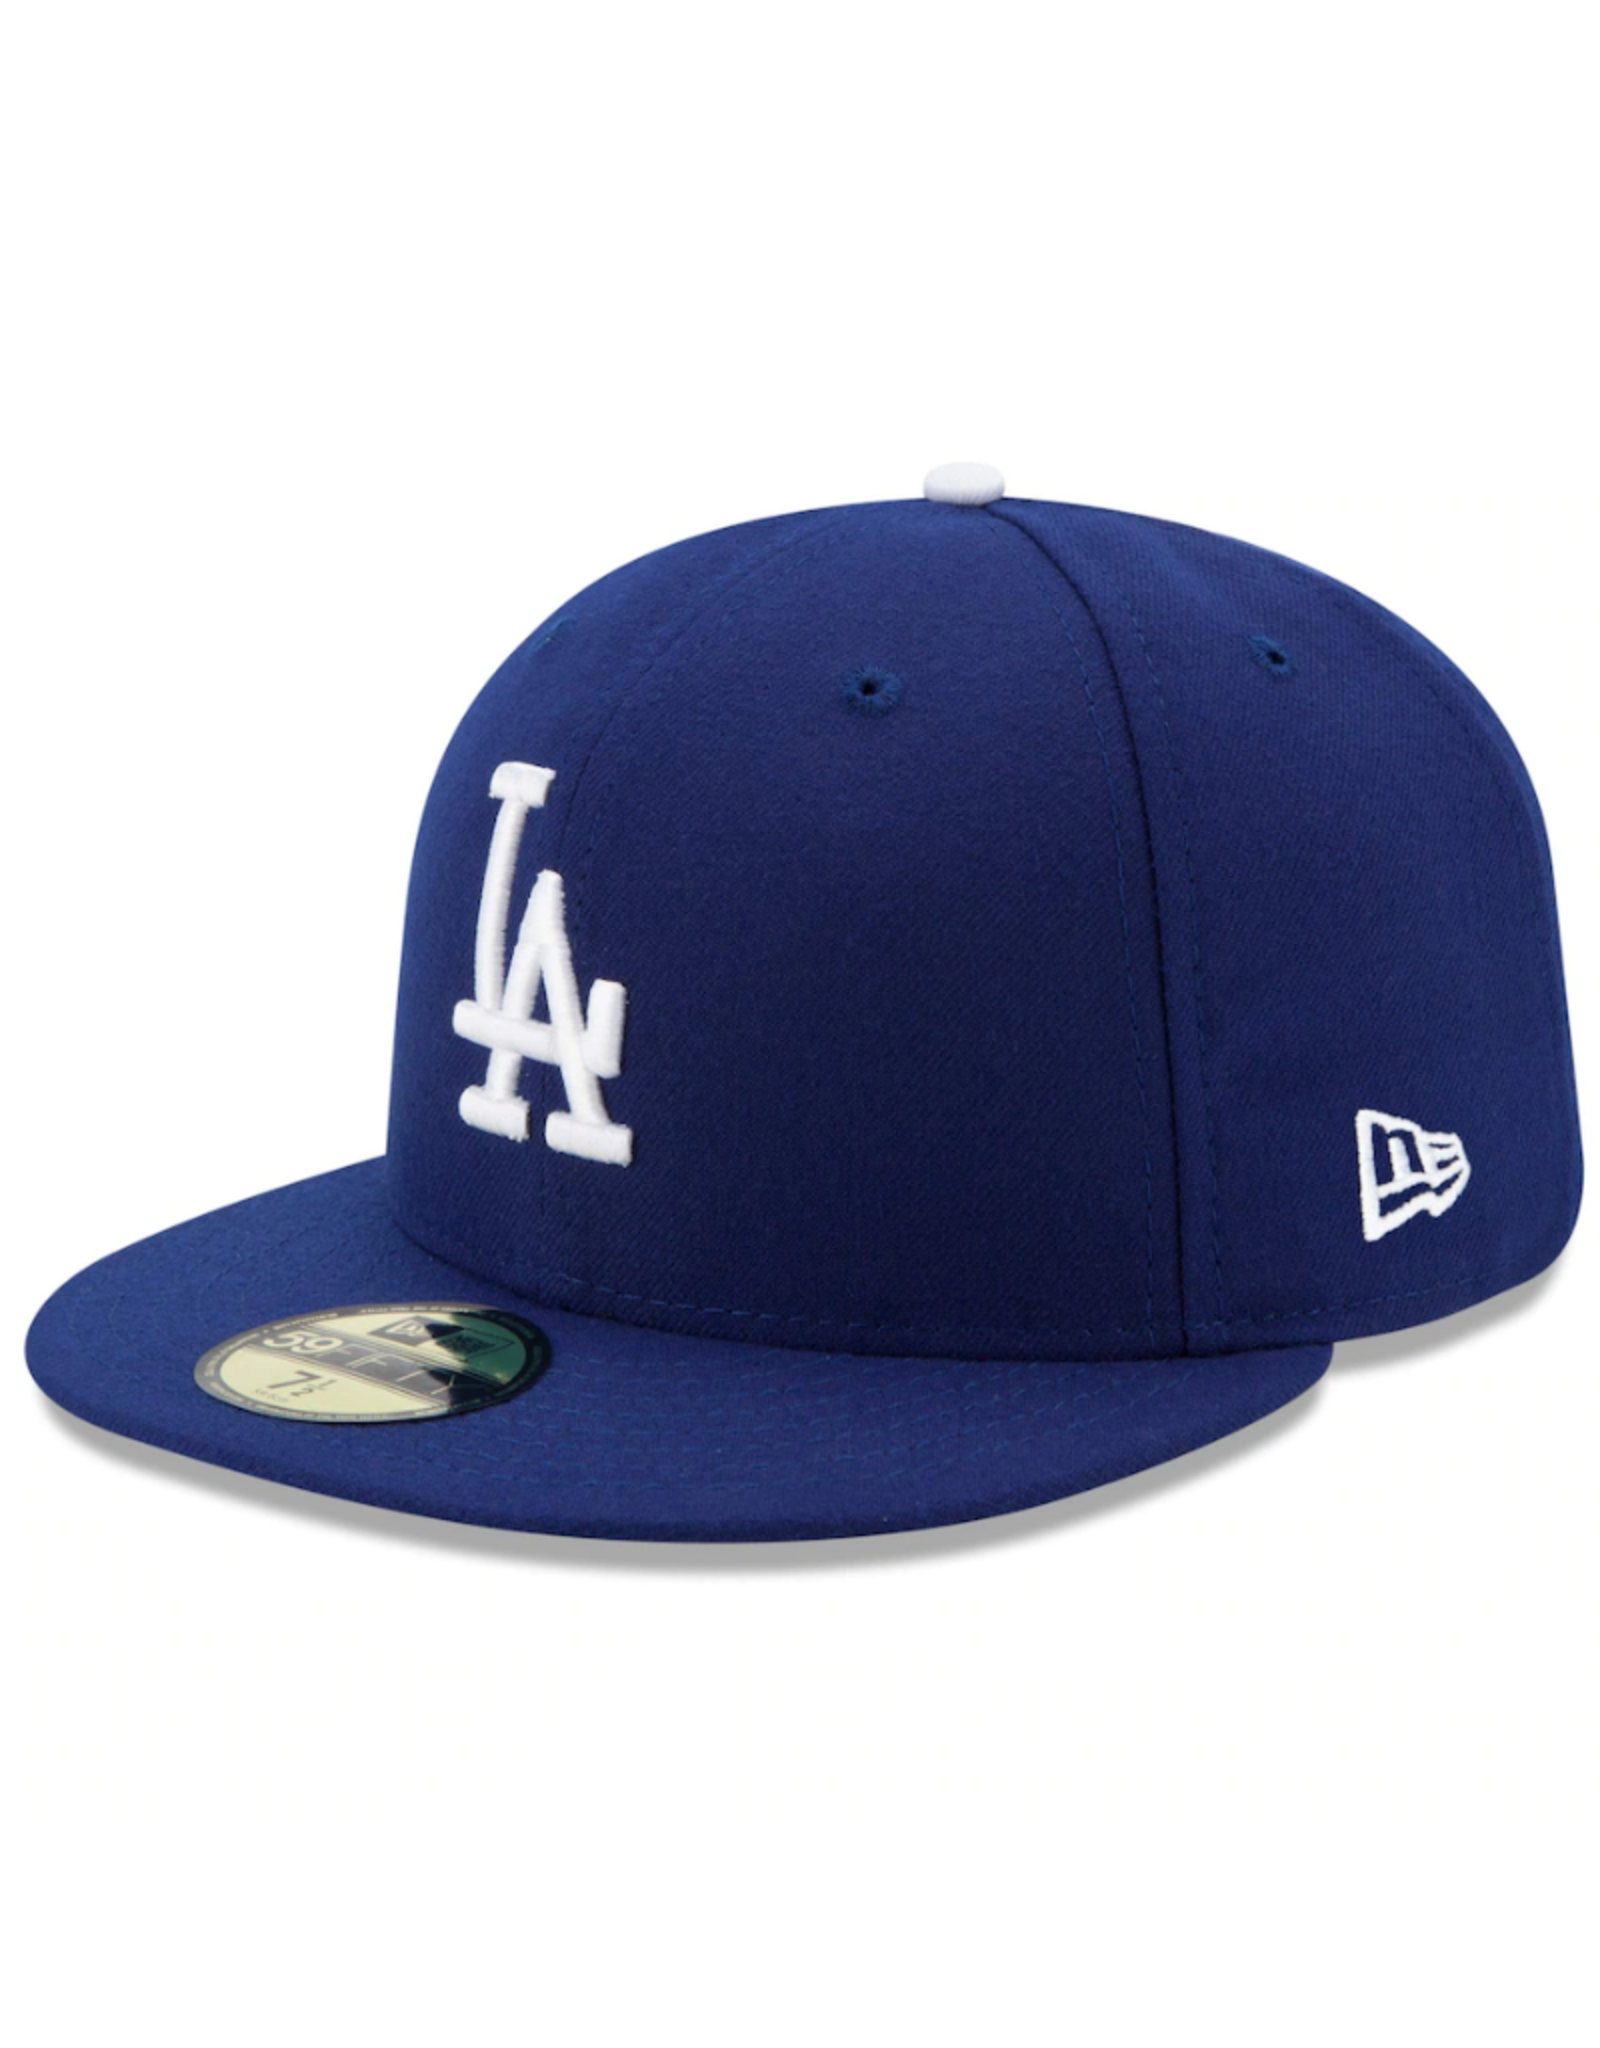 New Era On-Field Home Los Angeles Dodgers Royal